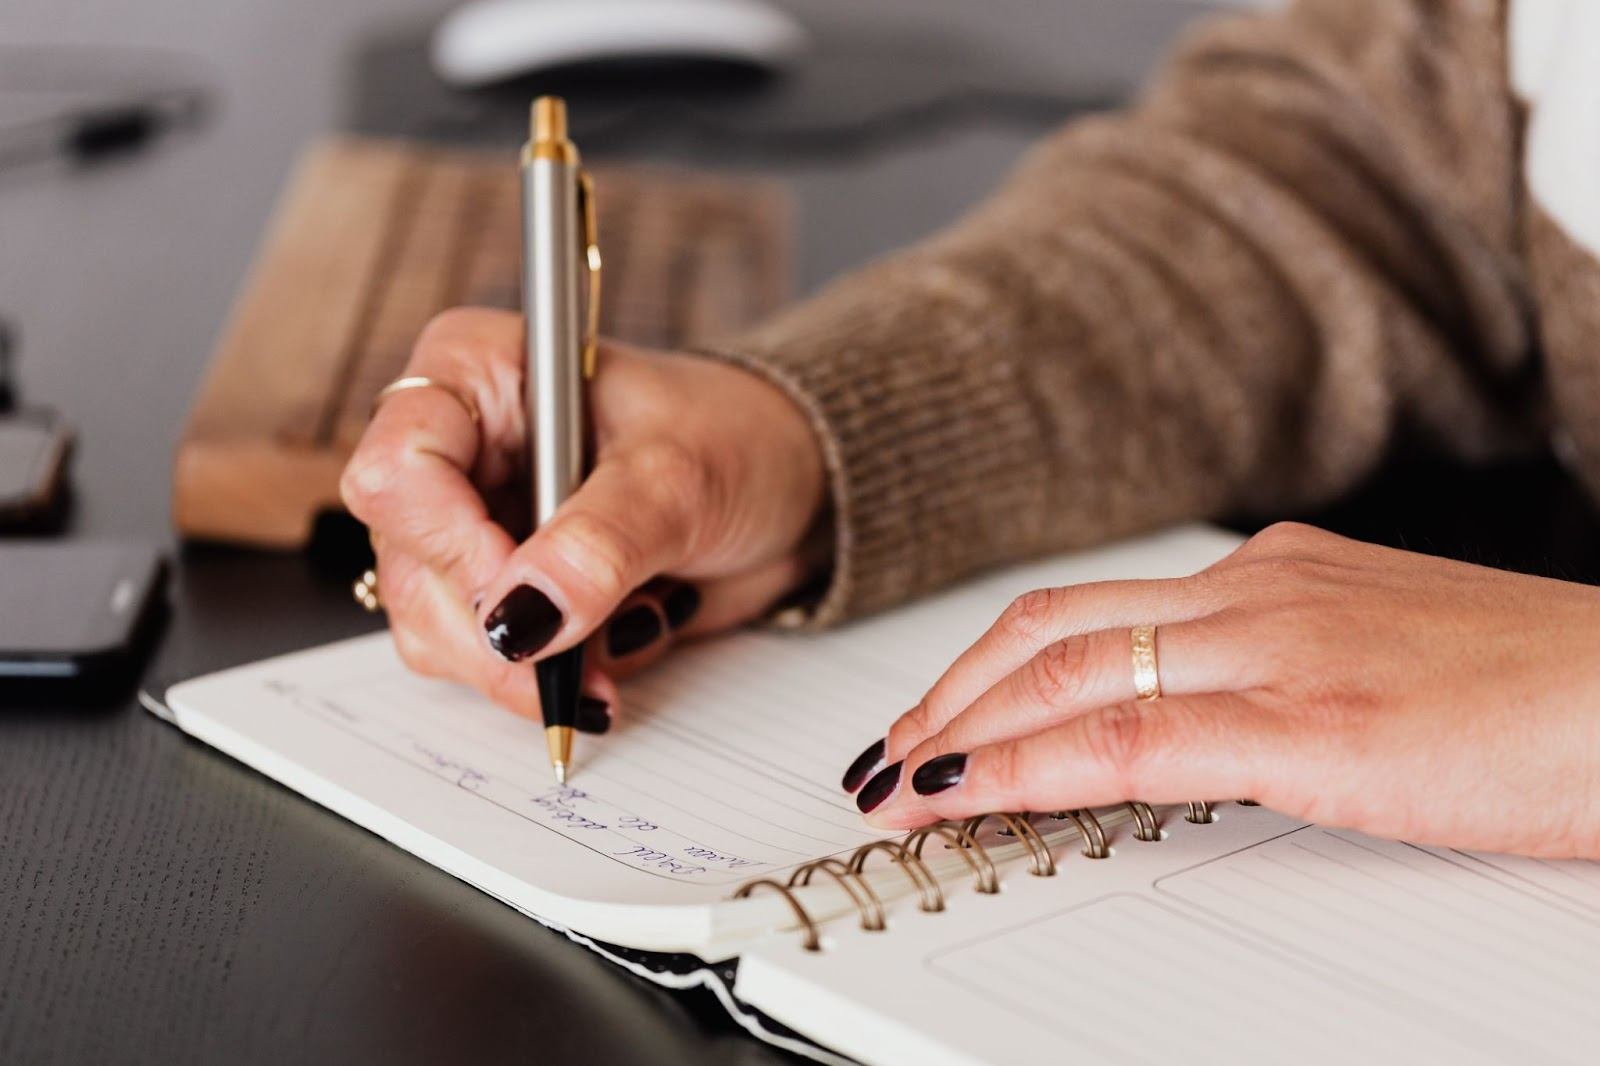 A woman is writing something in the notebook with a pen on the table.